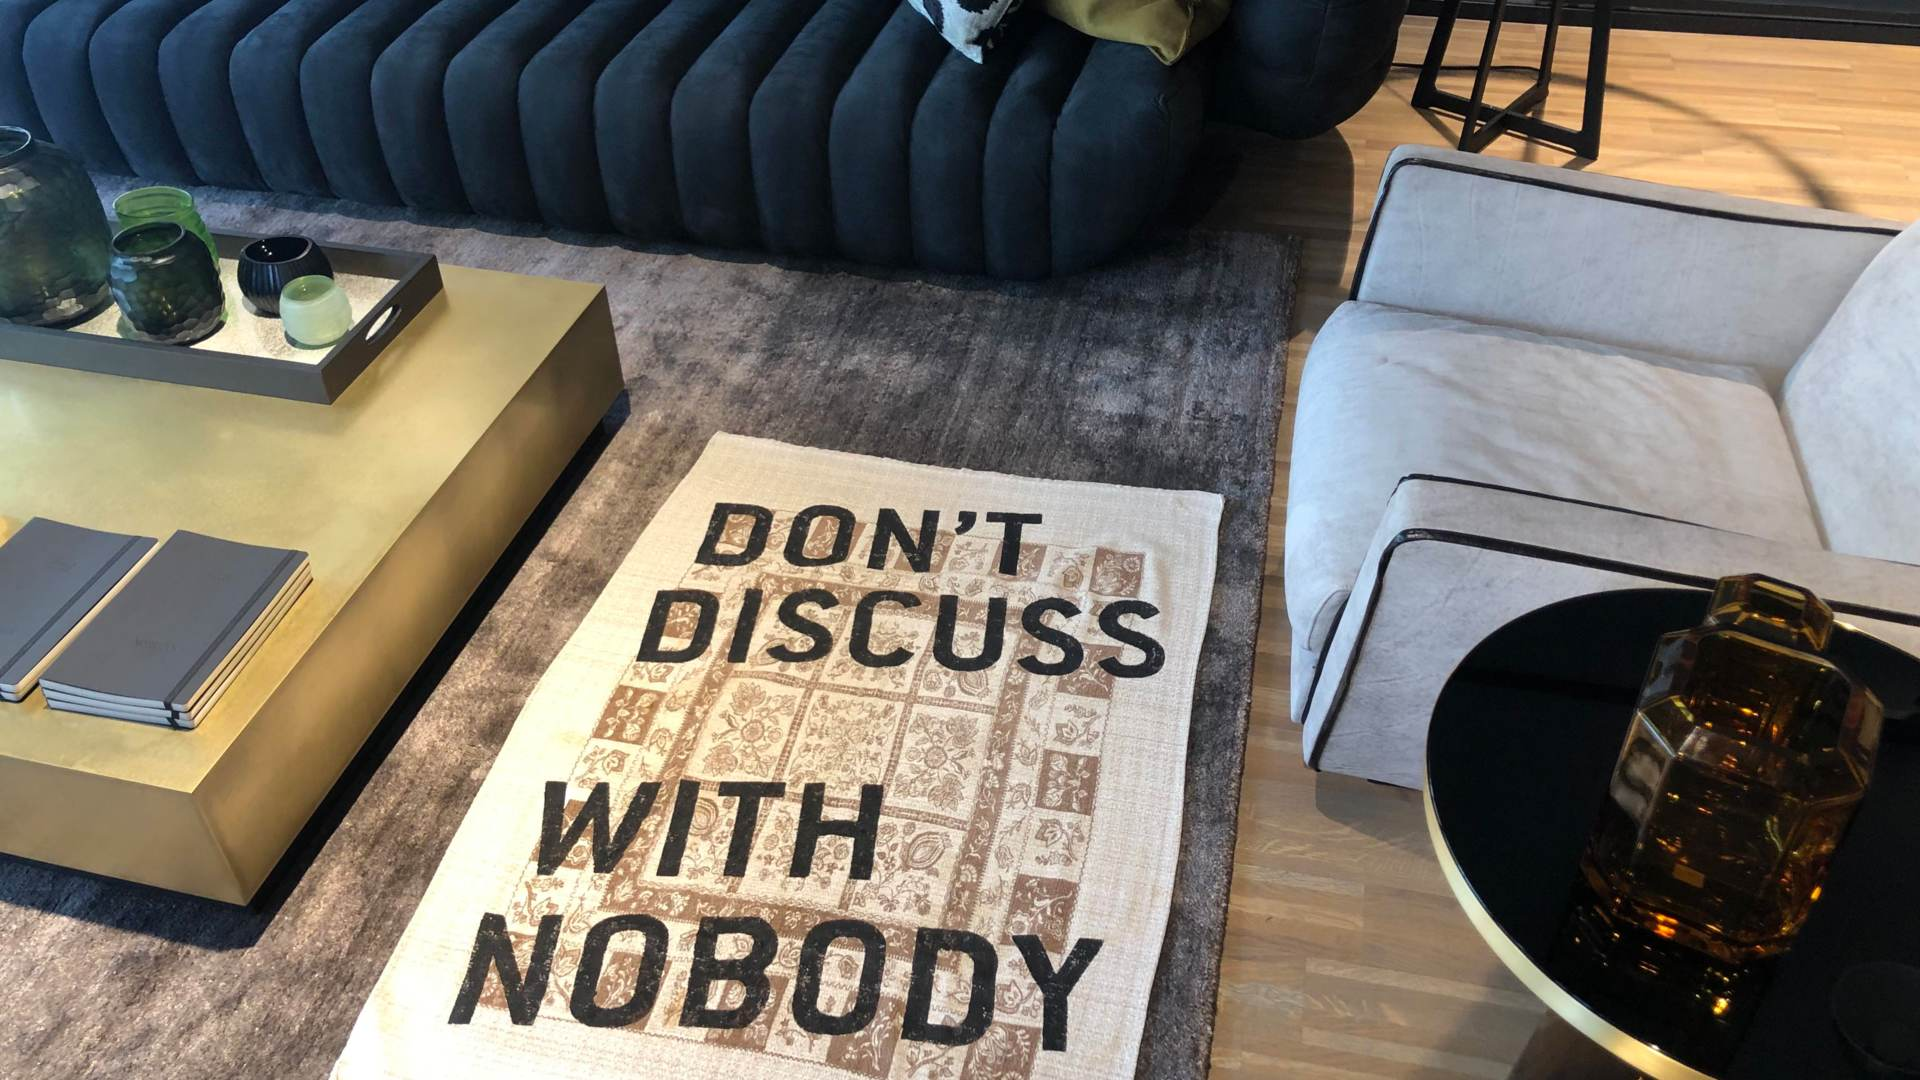 Don't discuss with nobody